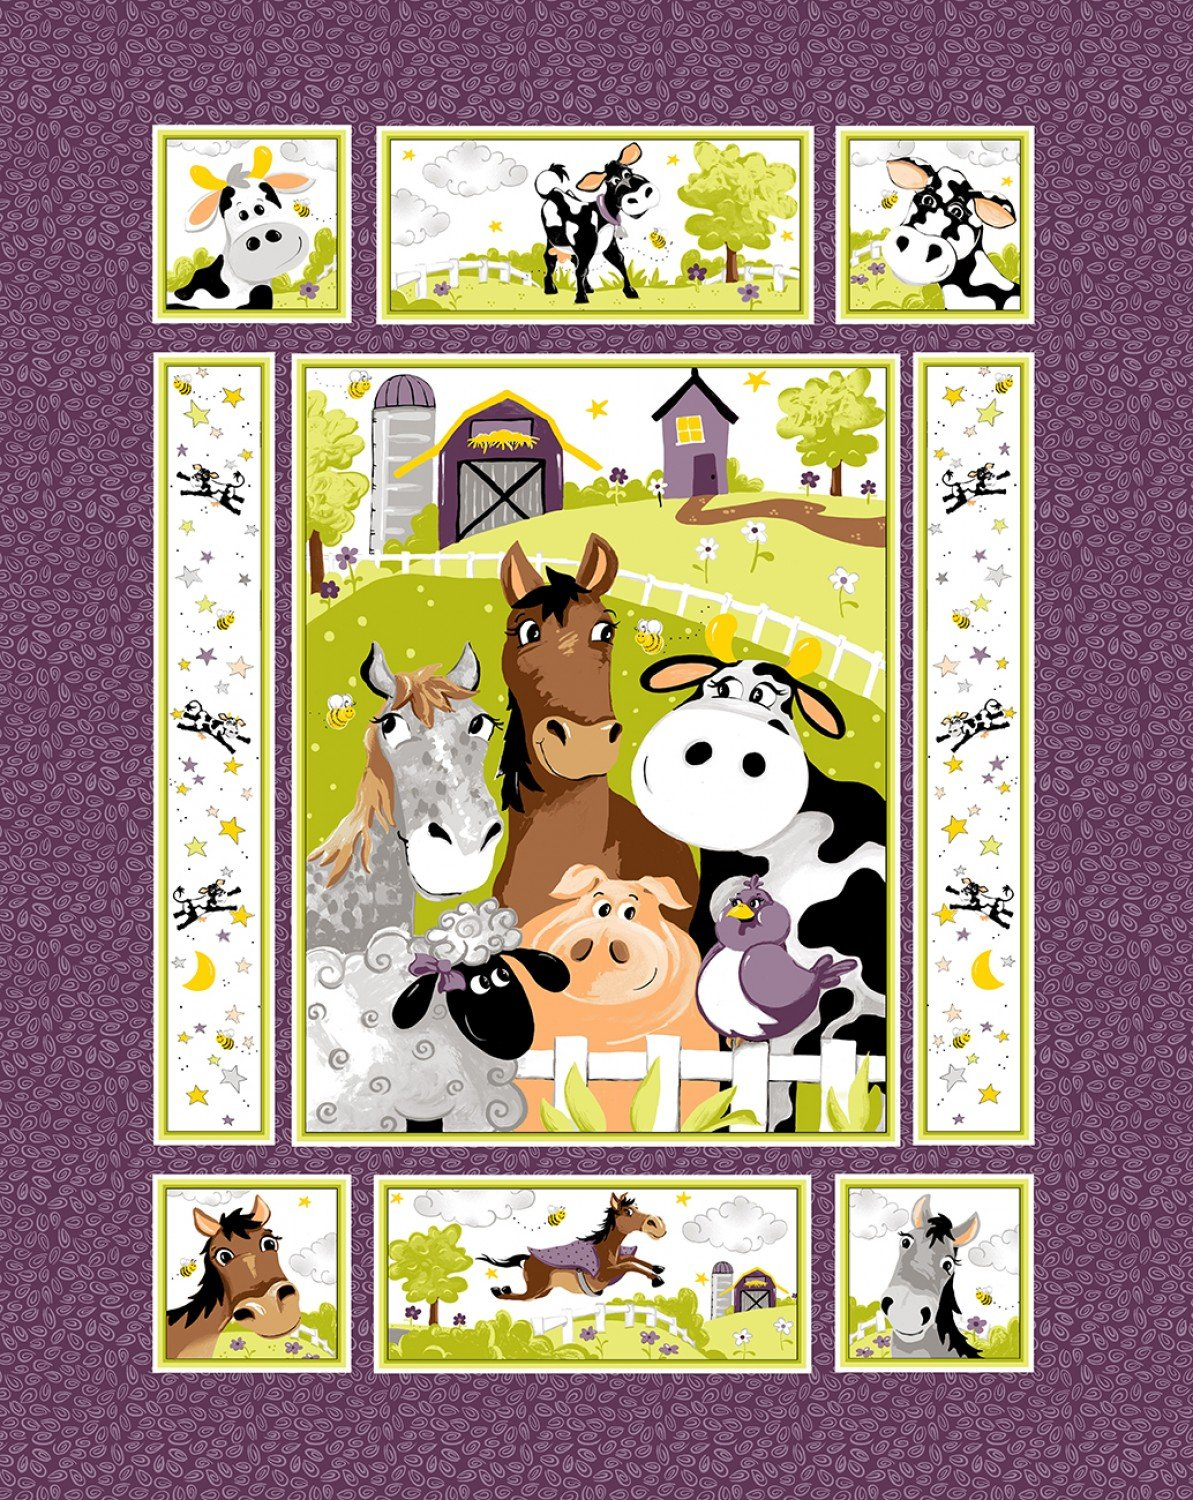 Barnyard Buddies Children's Fabric Panel by Susybee 36 x 45 Inches